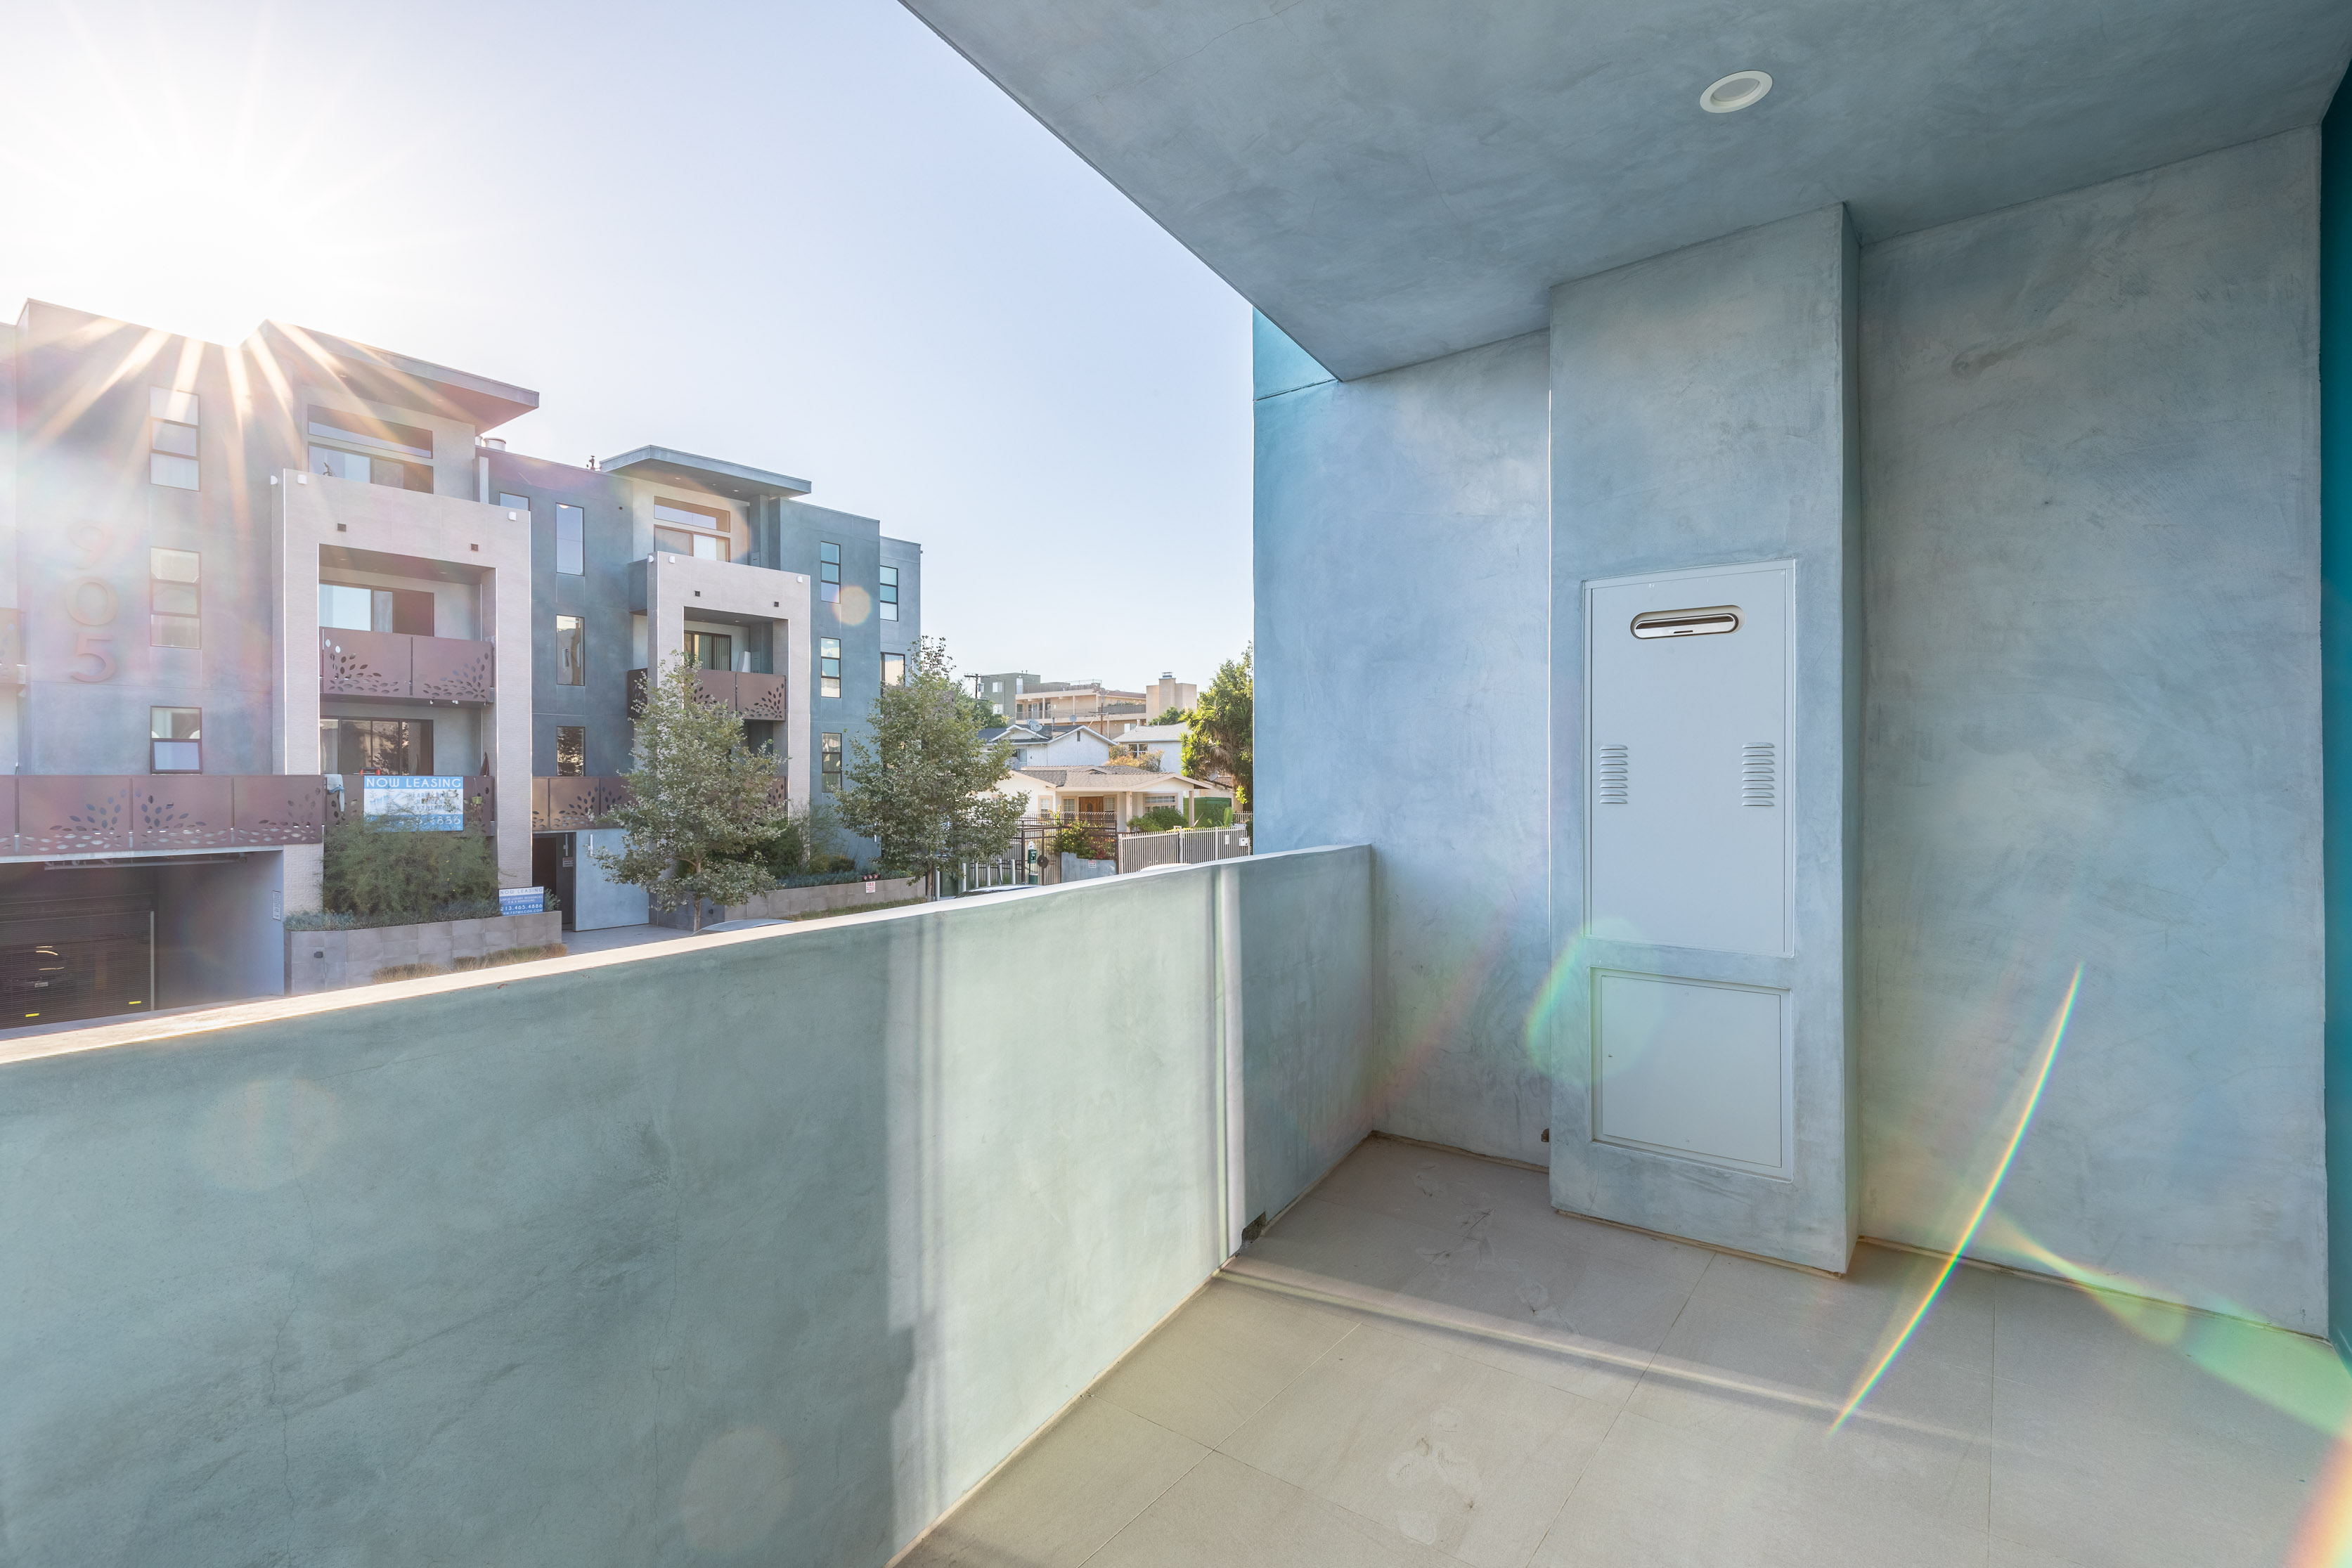 LIVE THAT LEISURE & LUXURY LIFE: 3BR/ 2BA W/ LARGE PRIVATE BALCONY, ROOFTOP, GYM, & 2 PARKING SPACES